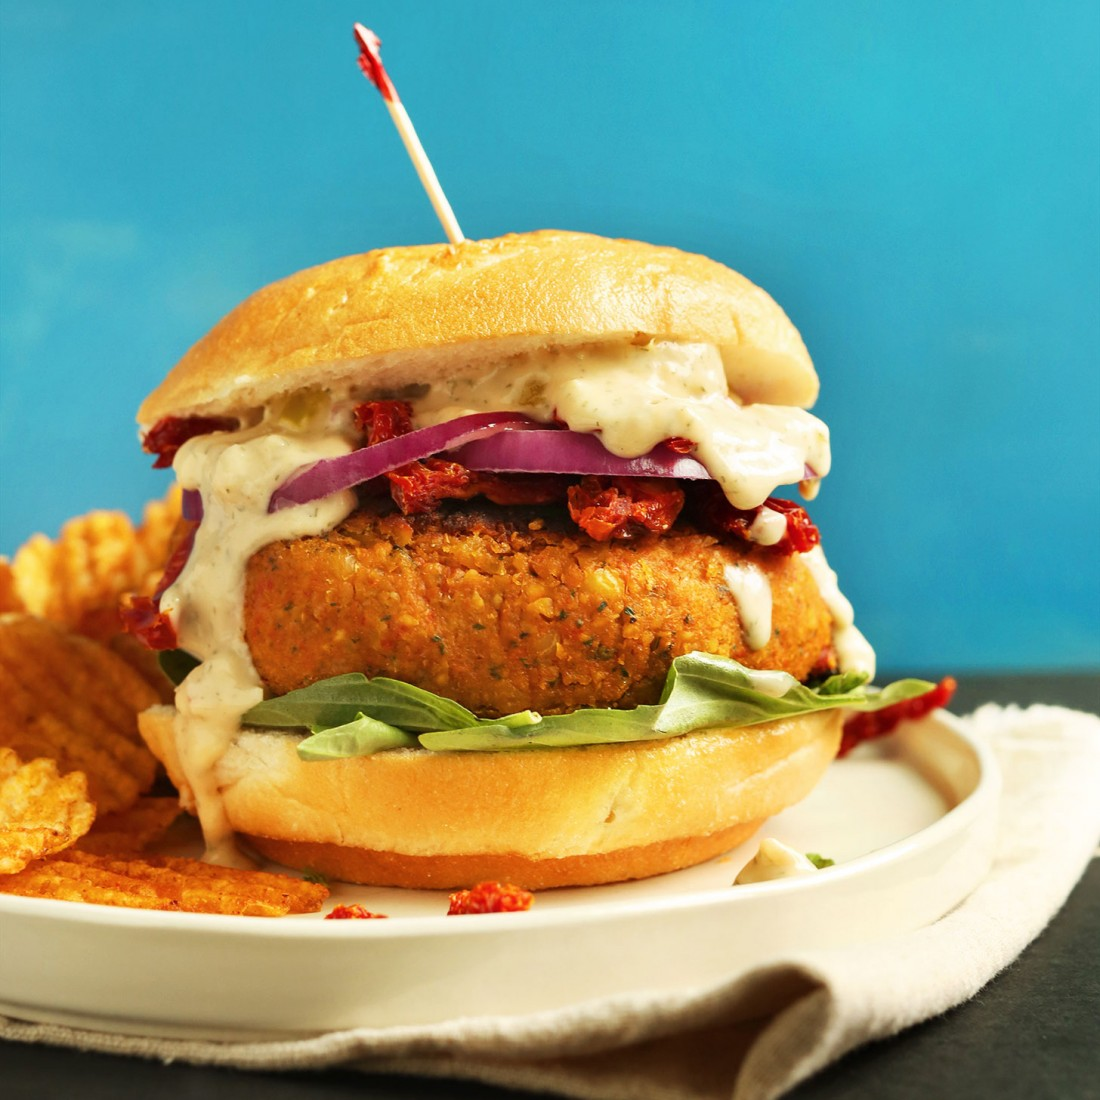 Sundried Tomato Chickpea Burger